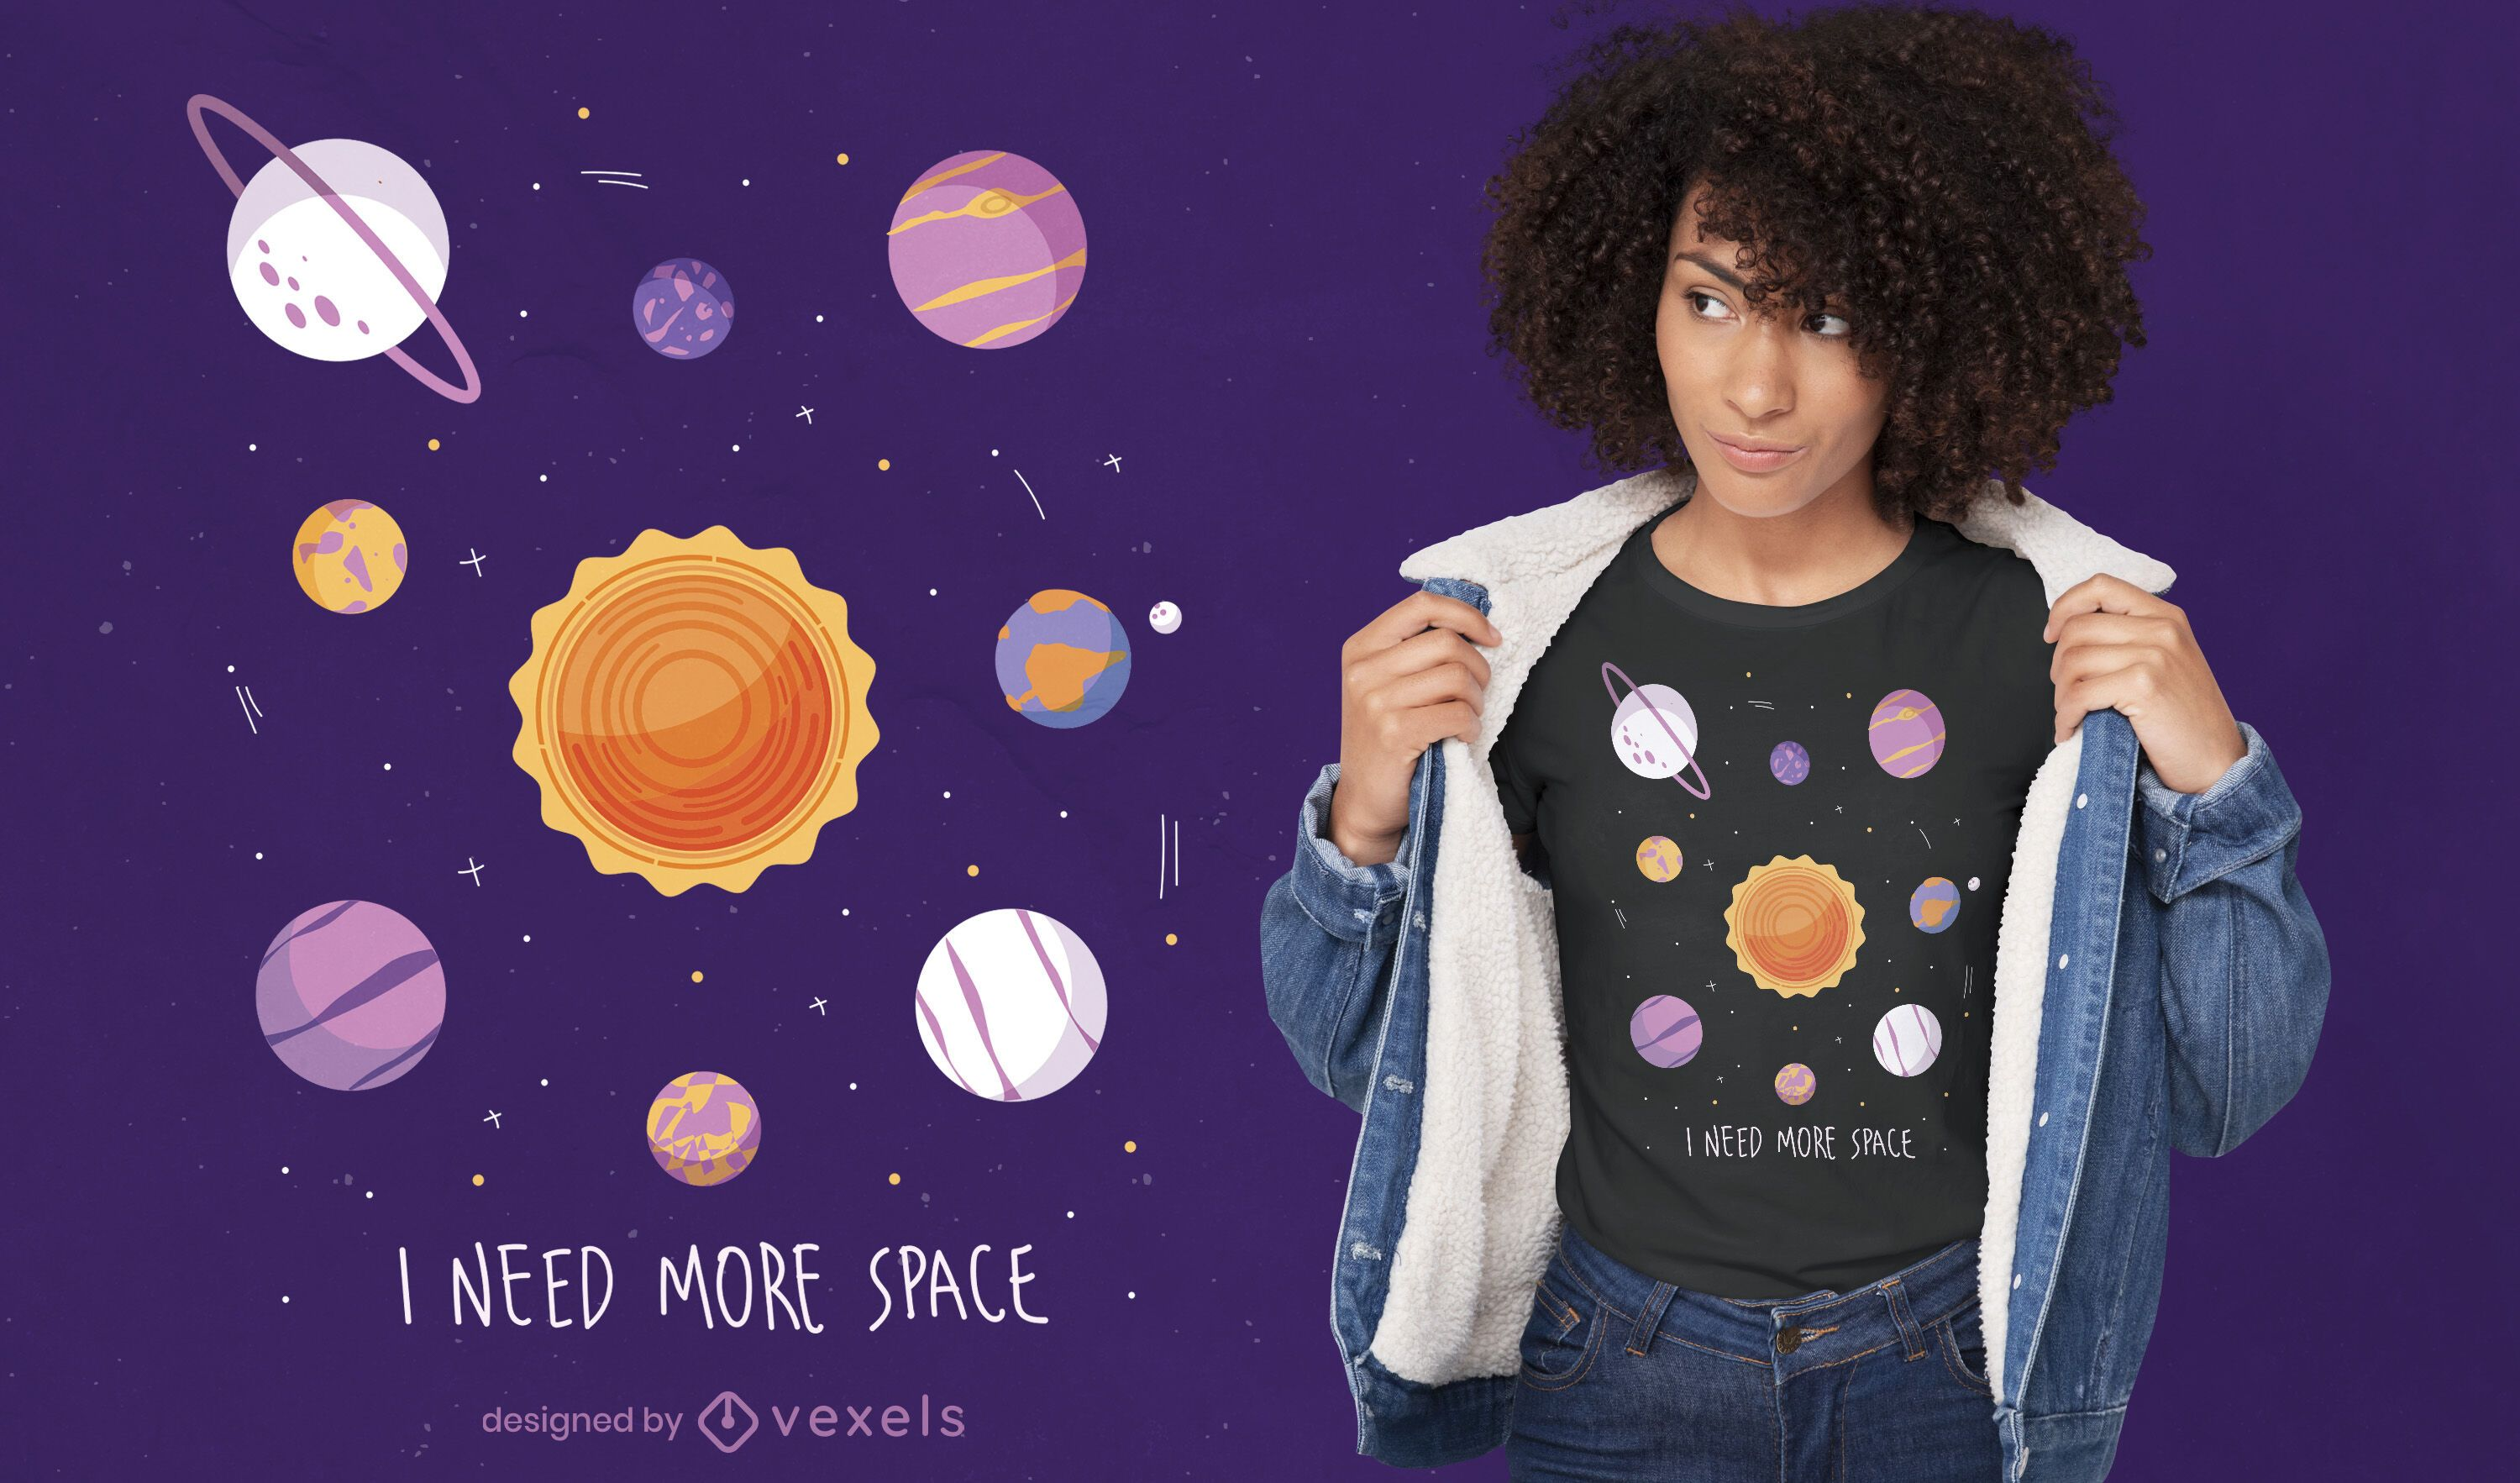 Need more space quote t-shirt design